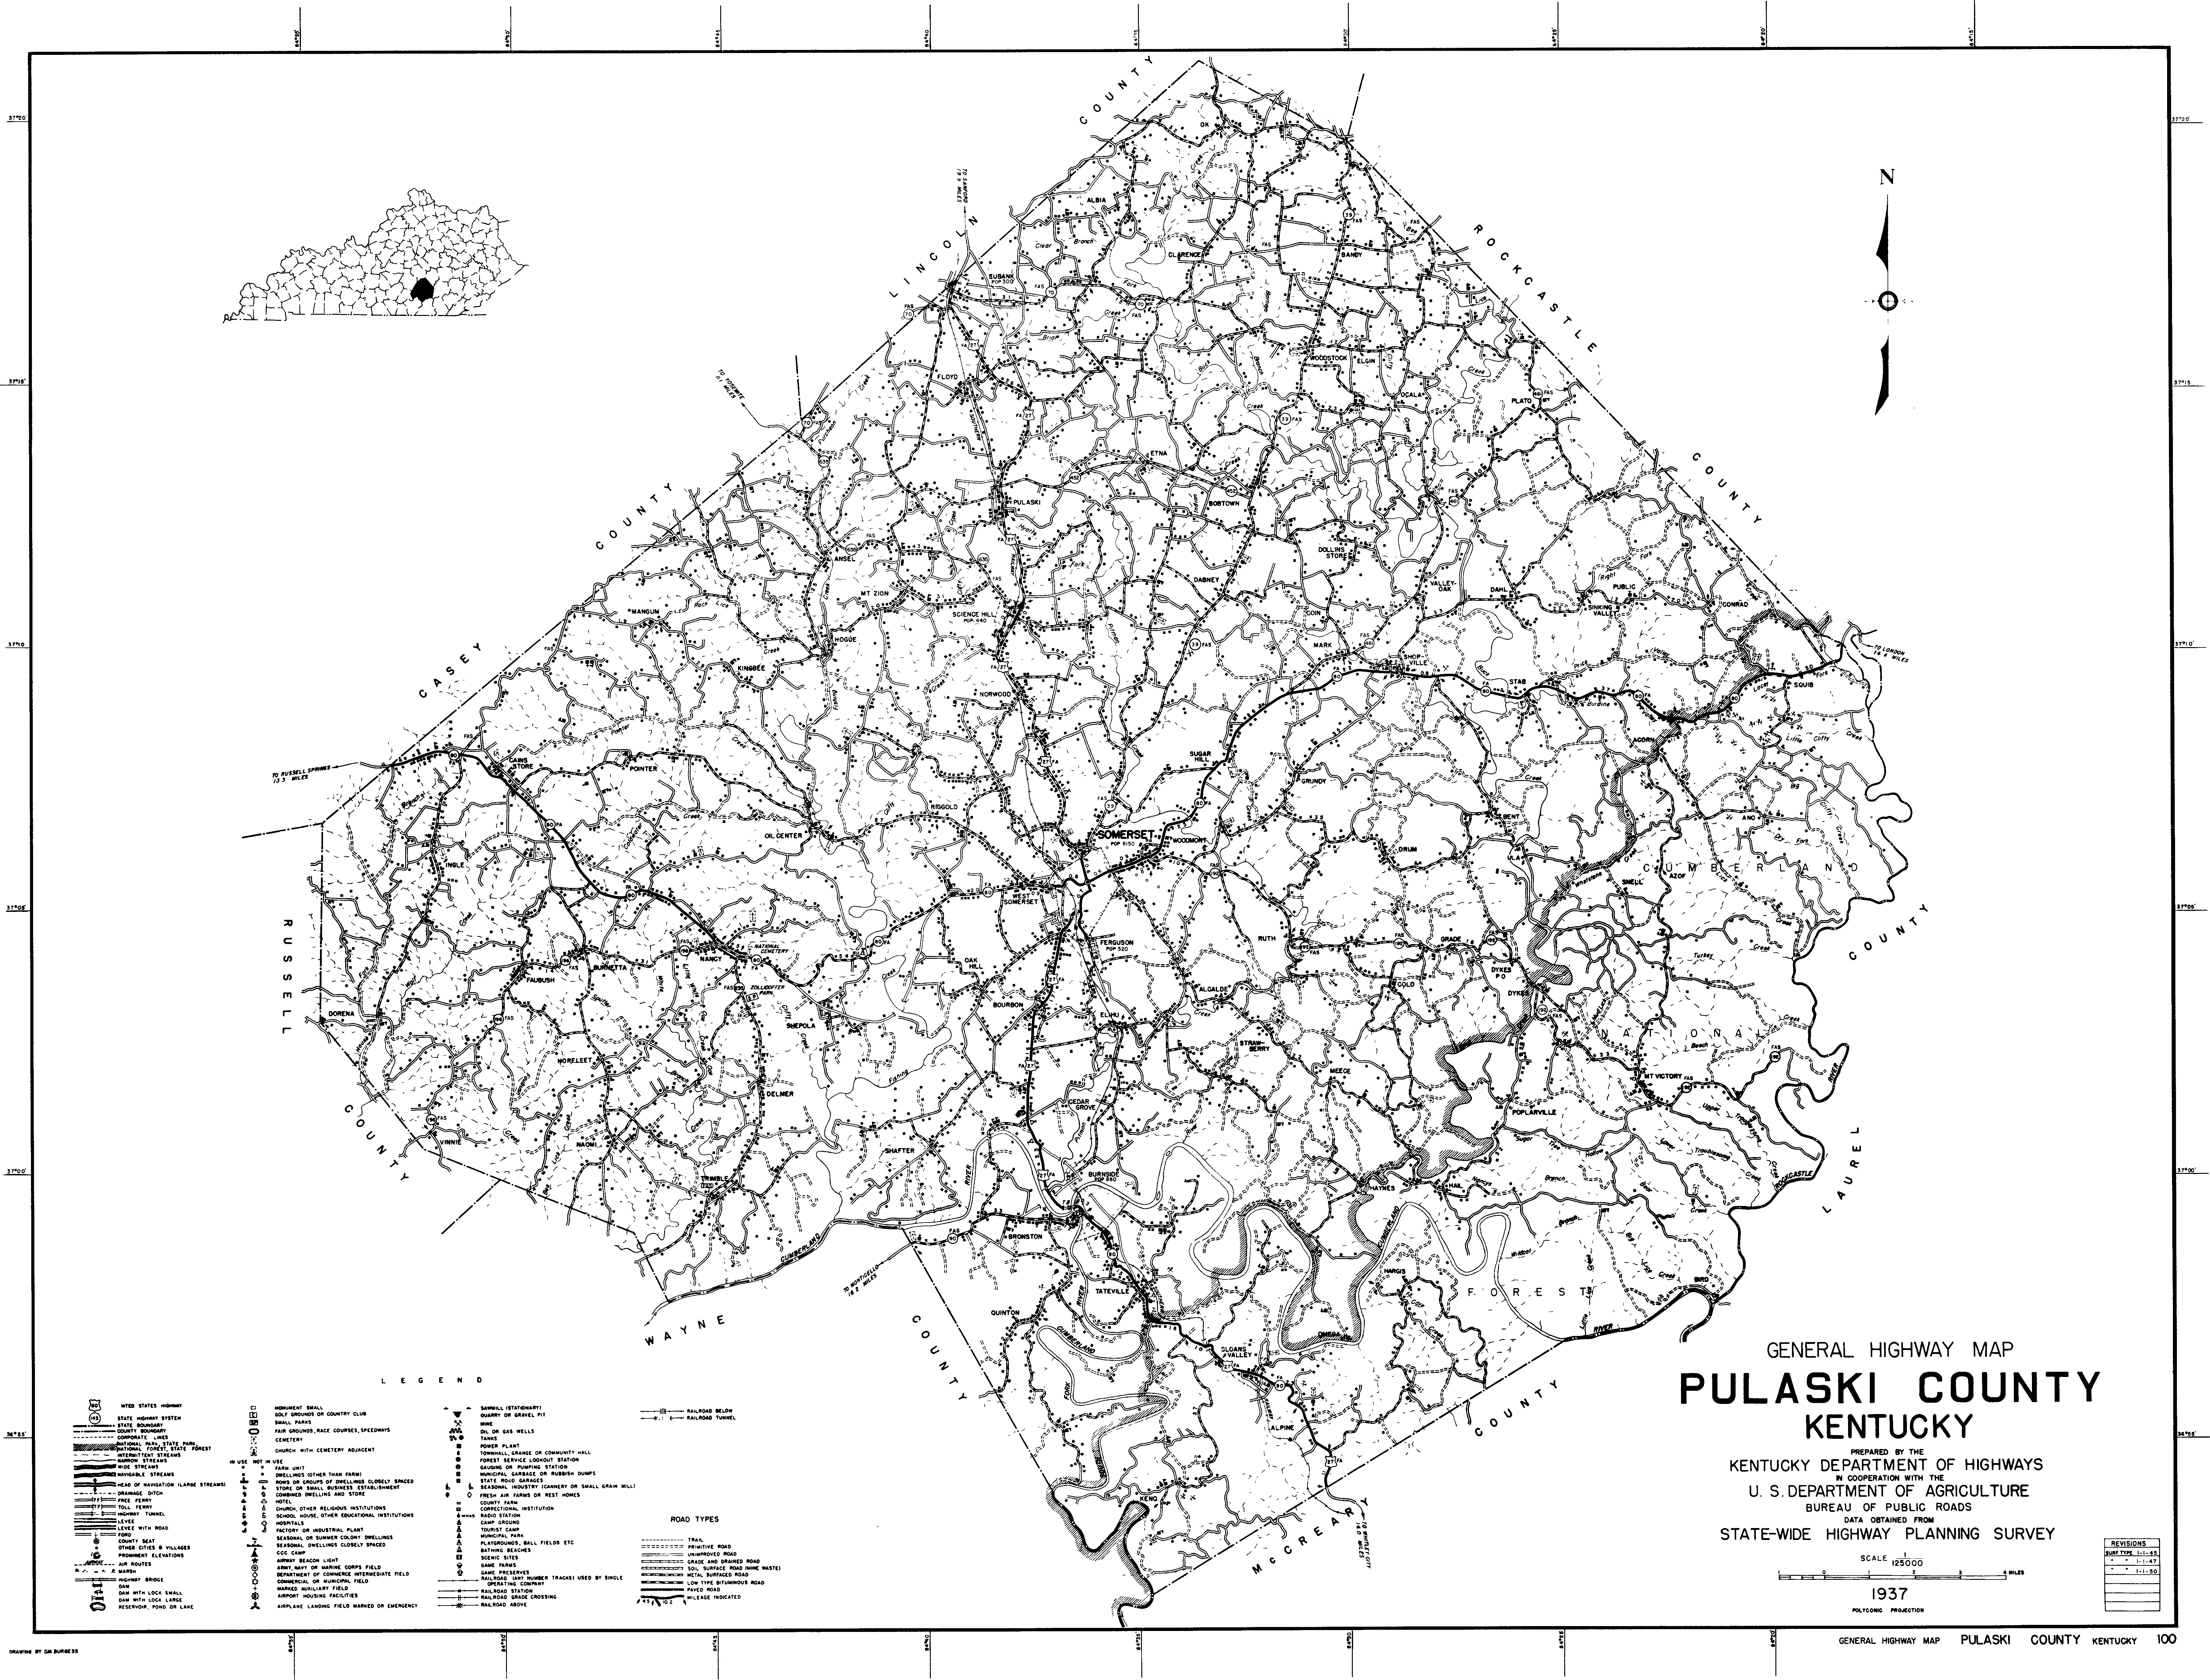 Pulaski County Ky highway map in 1950: Curtis / Colyer